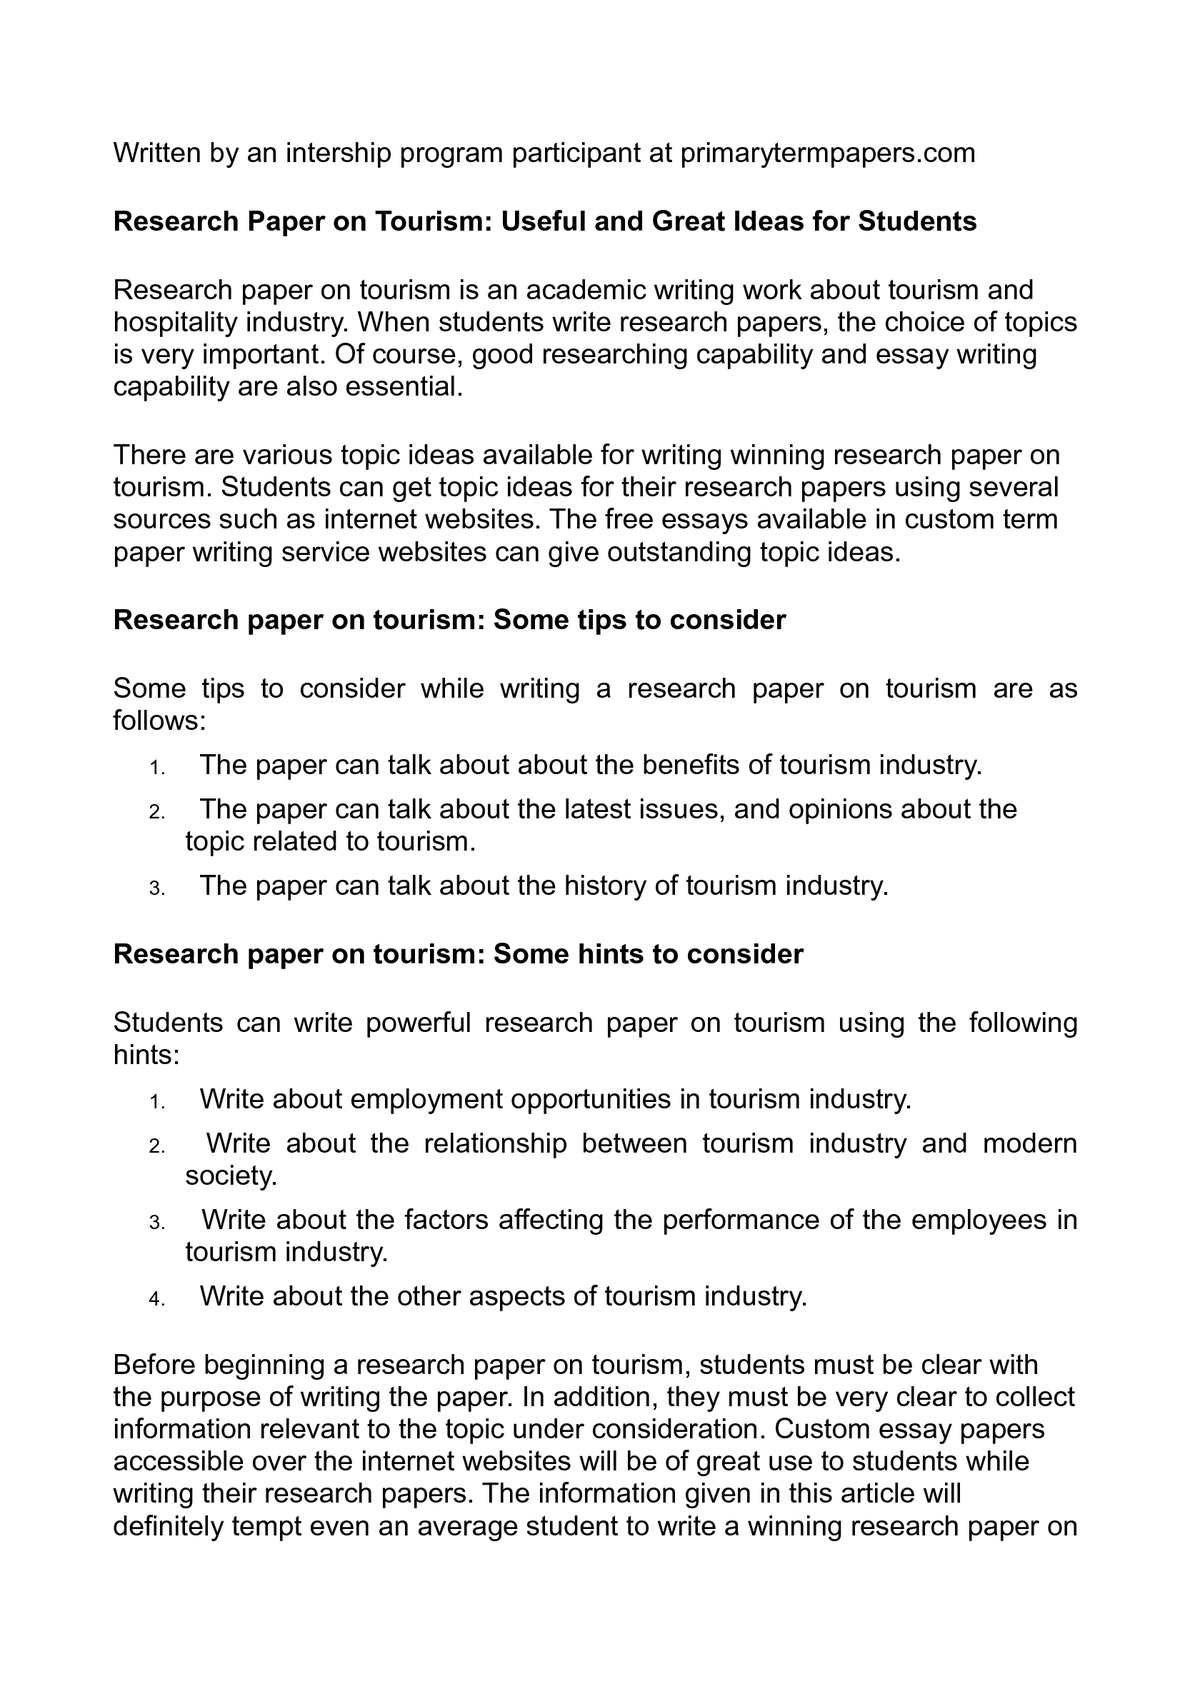 009 Research Paper Ideas For Fascinating Papers In Computer Science Middle School Full